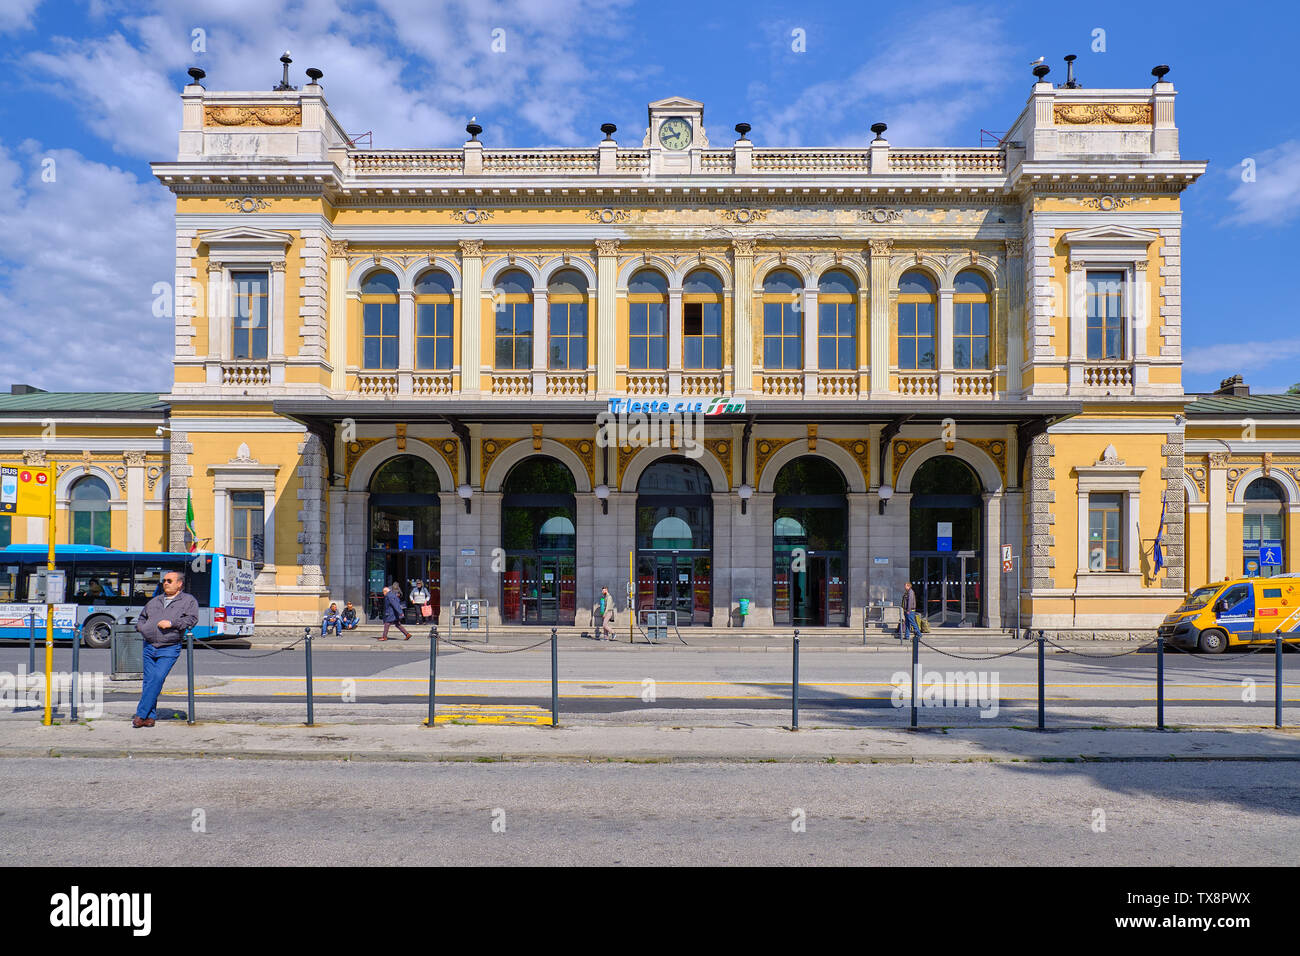 the-austro-hungarian-architecture-central-train-station-with-small-crowd-of-passenger-on-a-blue-sky-day-TX8PWX.jpg